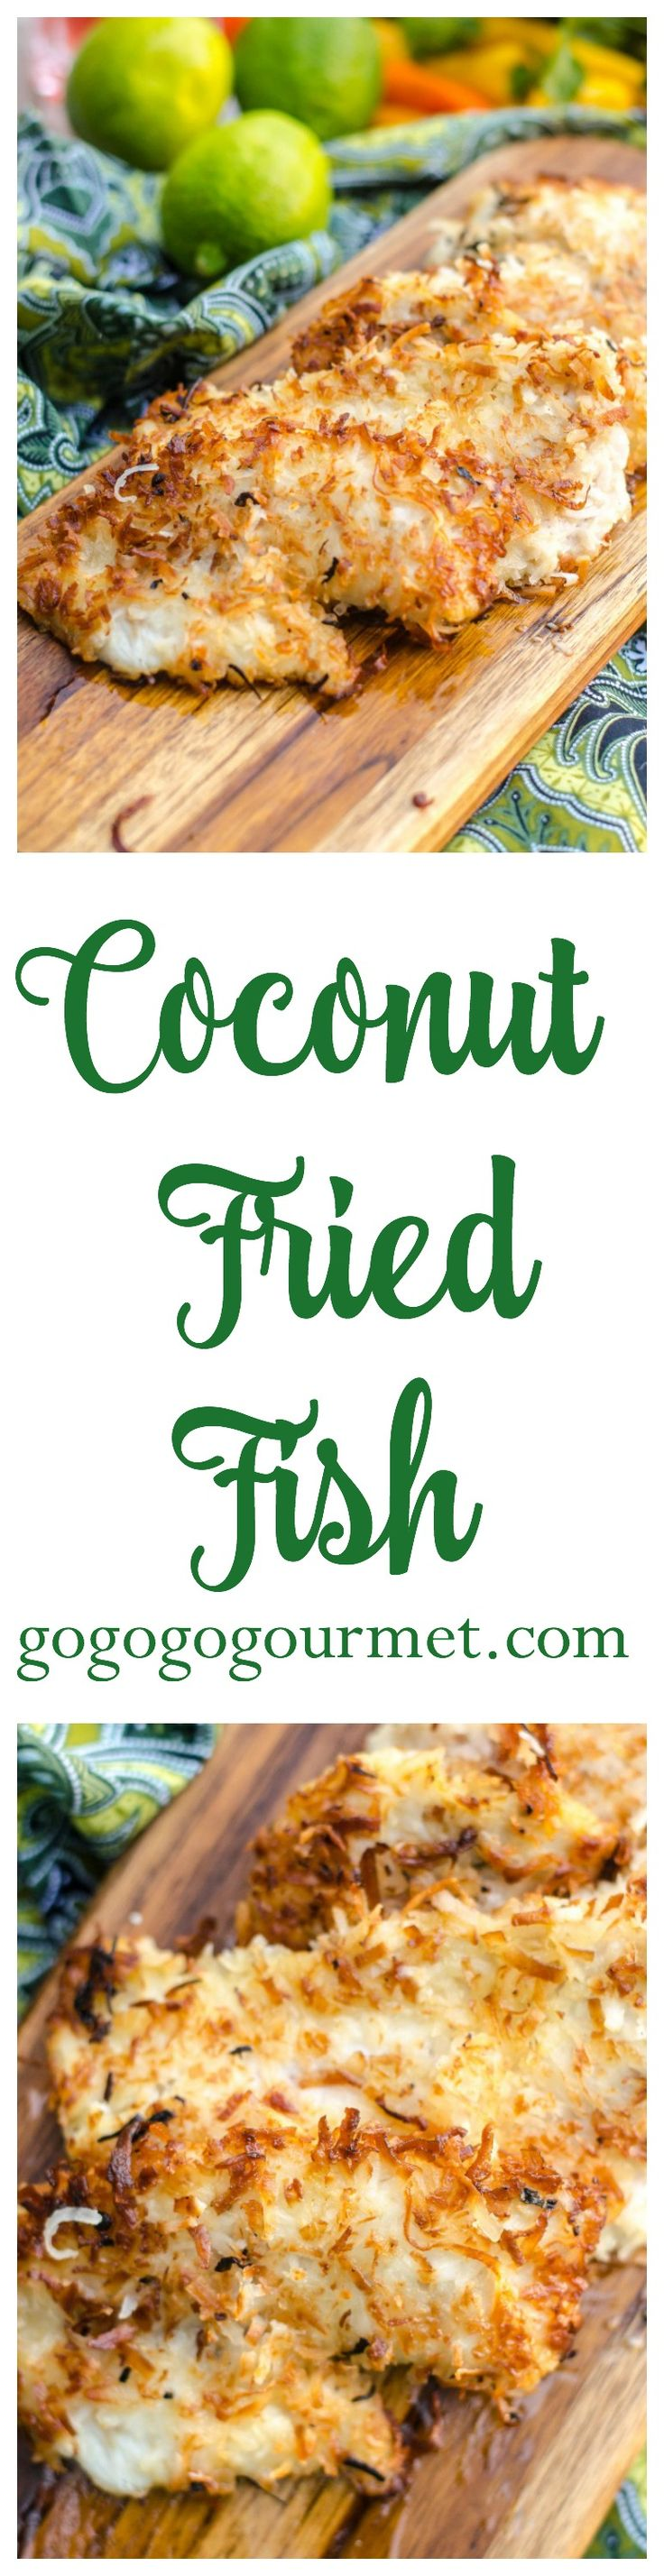 This Coconut Crusted Fried Fish is a surefire way to add a little island flair to your day! Only a handful of pantry-ready ingredients and ready in under 30 minutes. Coconut Fried Fish | Go Go Go Gourmet @gogogogourmet